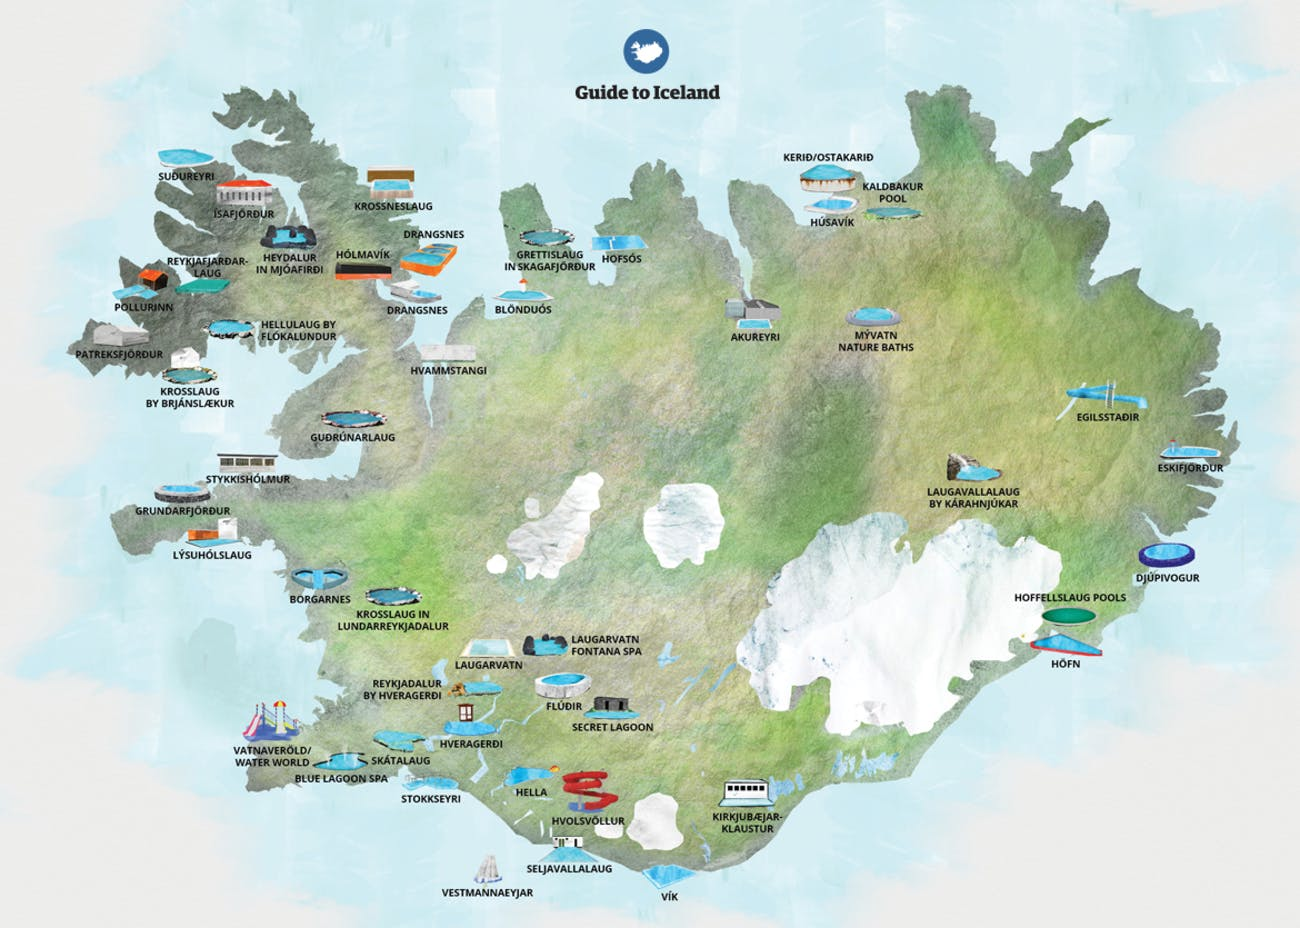 The Best & Most Useful Maps of Iceland | Guide to Iceland Indonesia On World Map Cold on pakistan on world map, a turkey on world map, burma on world map, madagascar on world map, republic of congo on world map, thailand map, fiji on world map, strait of malacca map, bering sea on world map, new zealand on a world map, russia on world map, chile on world map, england on a world map, jakarta world map, belarus on world map, taiwan on world map, the sudan on world map, israel on world map, east indies on world map, philippines on world map,